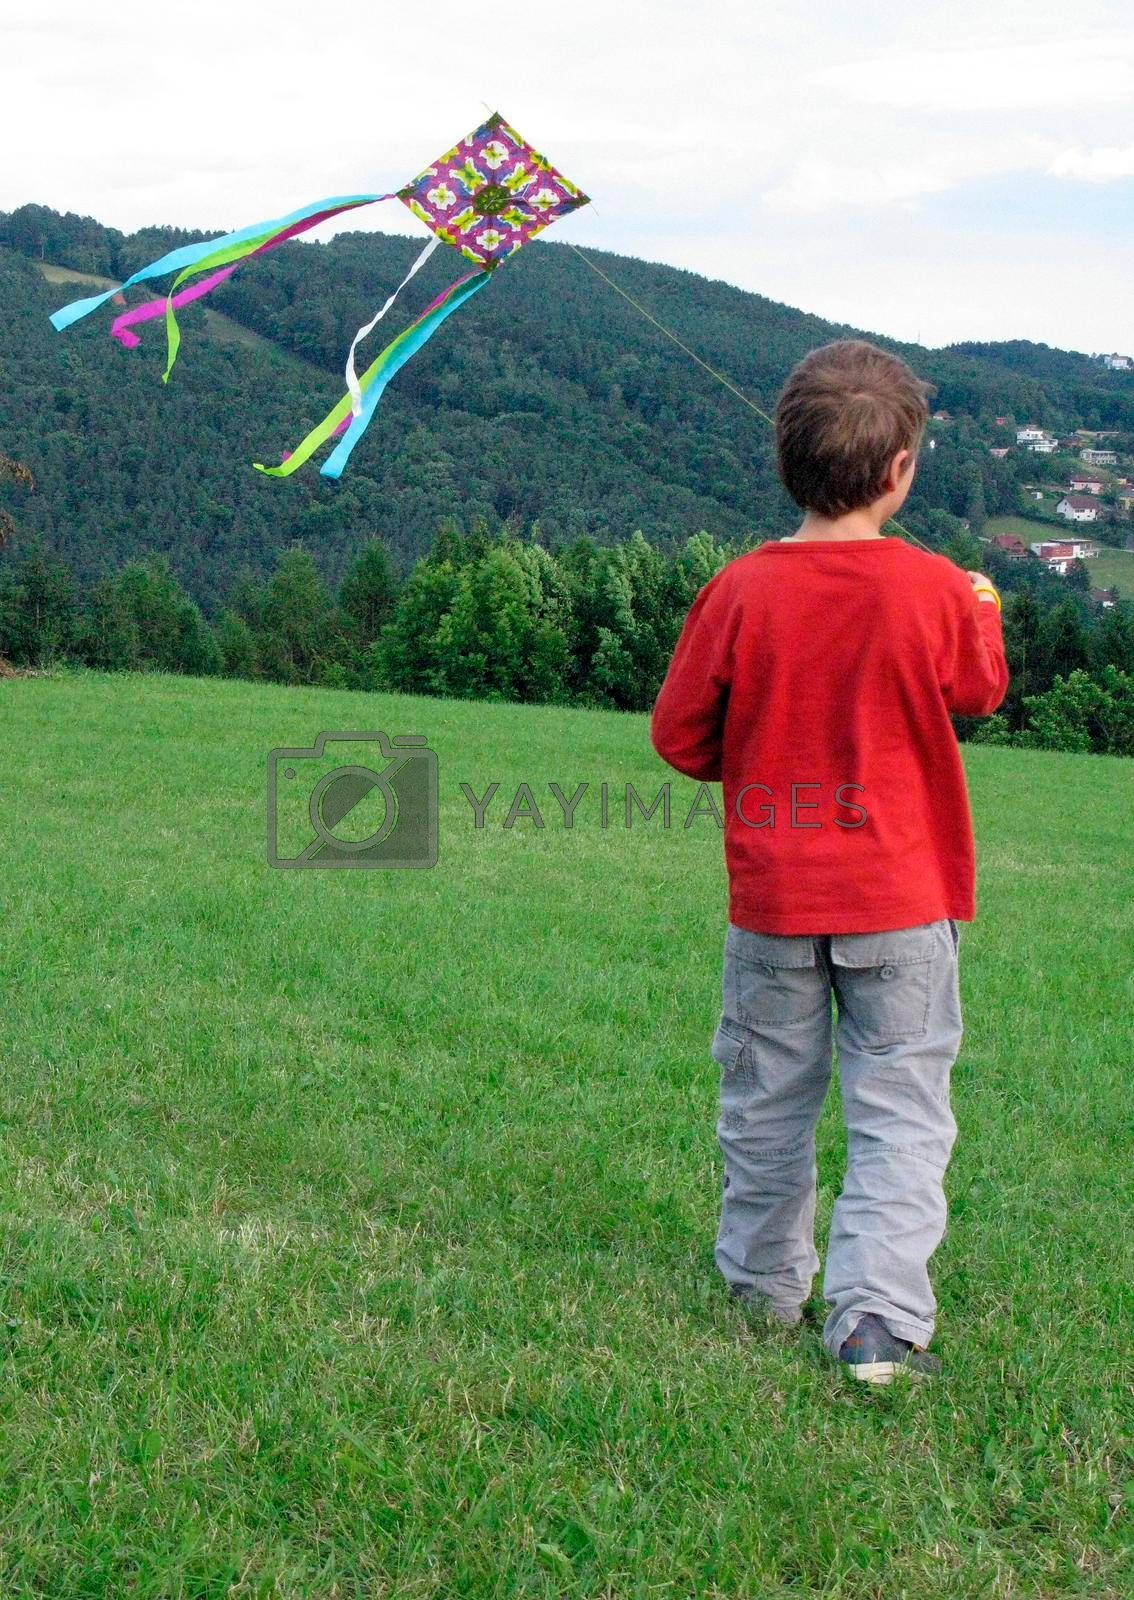 kite flying as a summer leisure activity in windy weather conditions